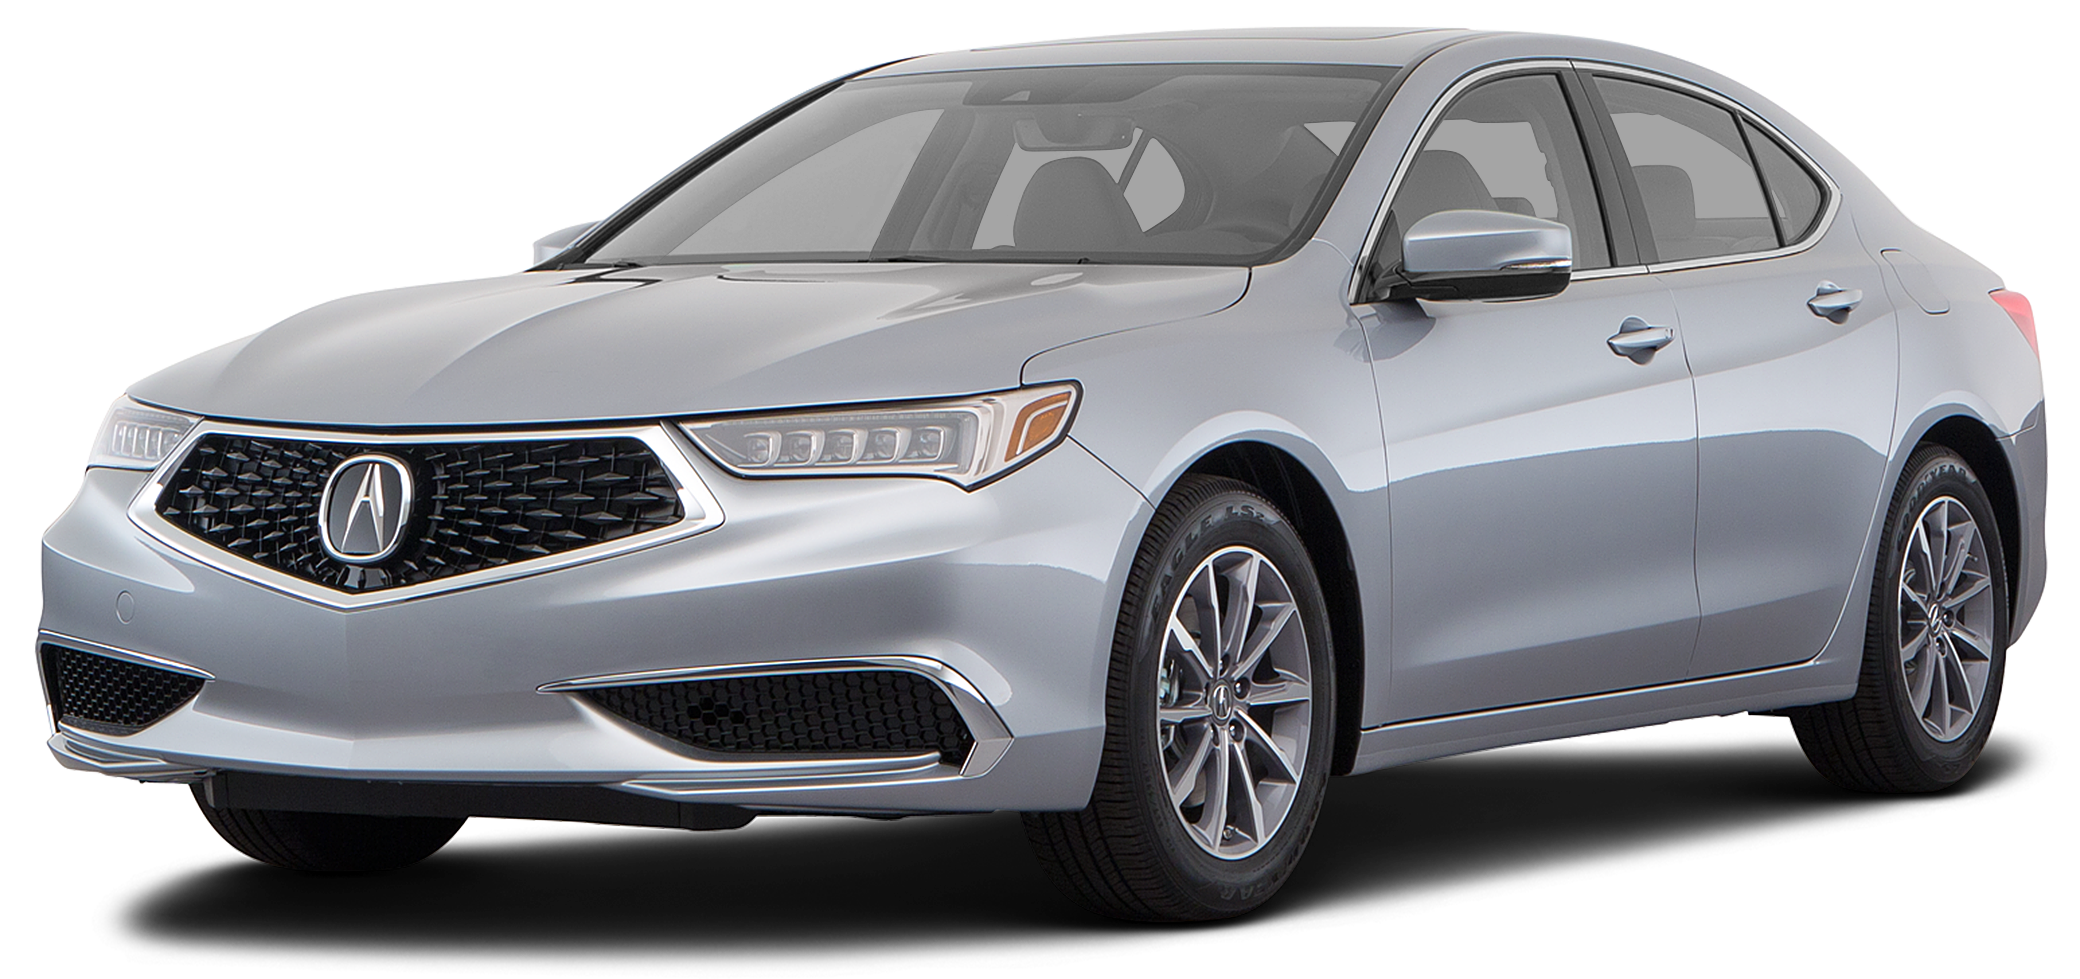 New 2019 Acura TLX at Acura of Honolulu